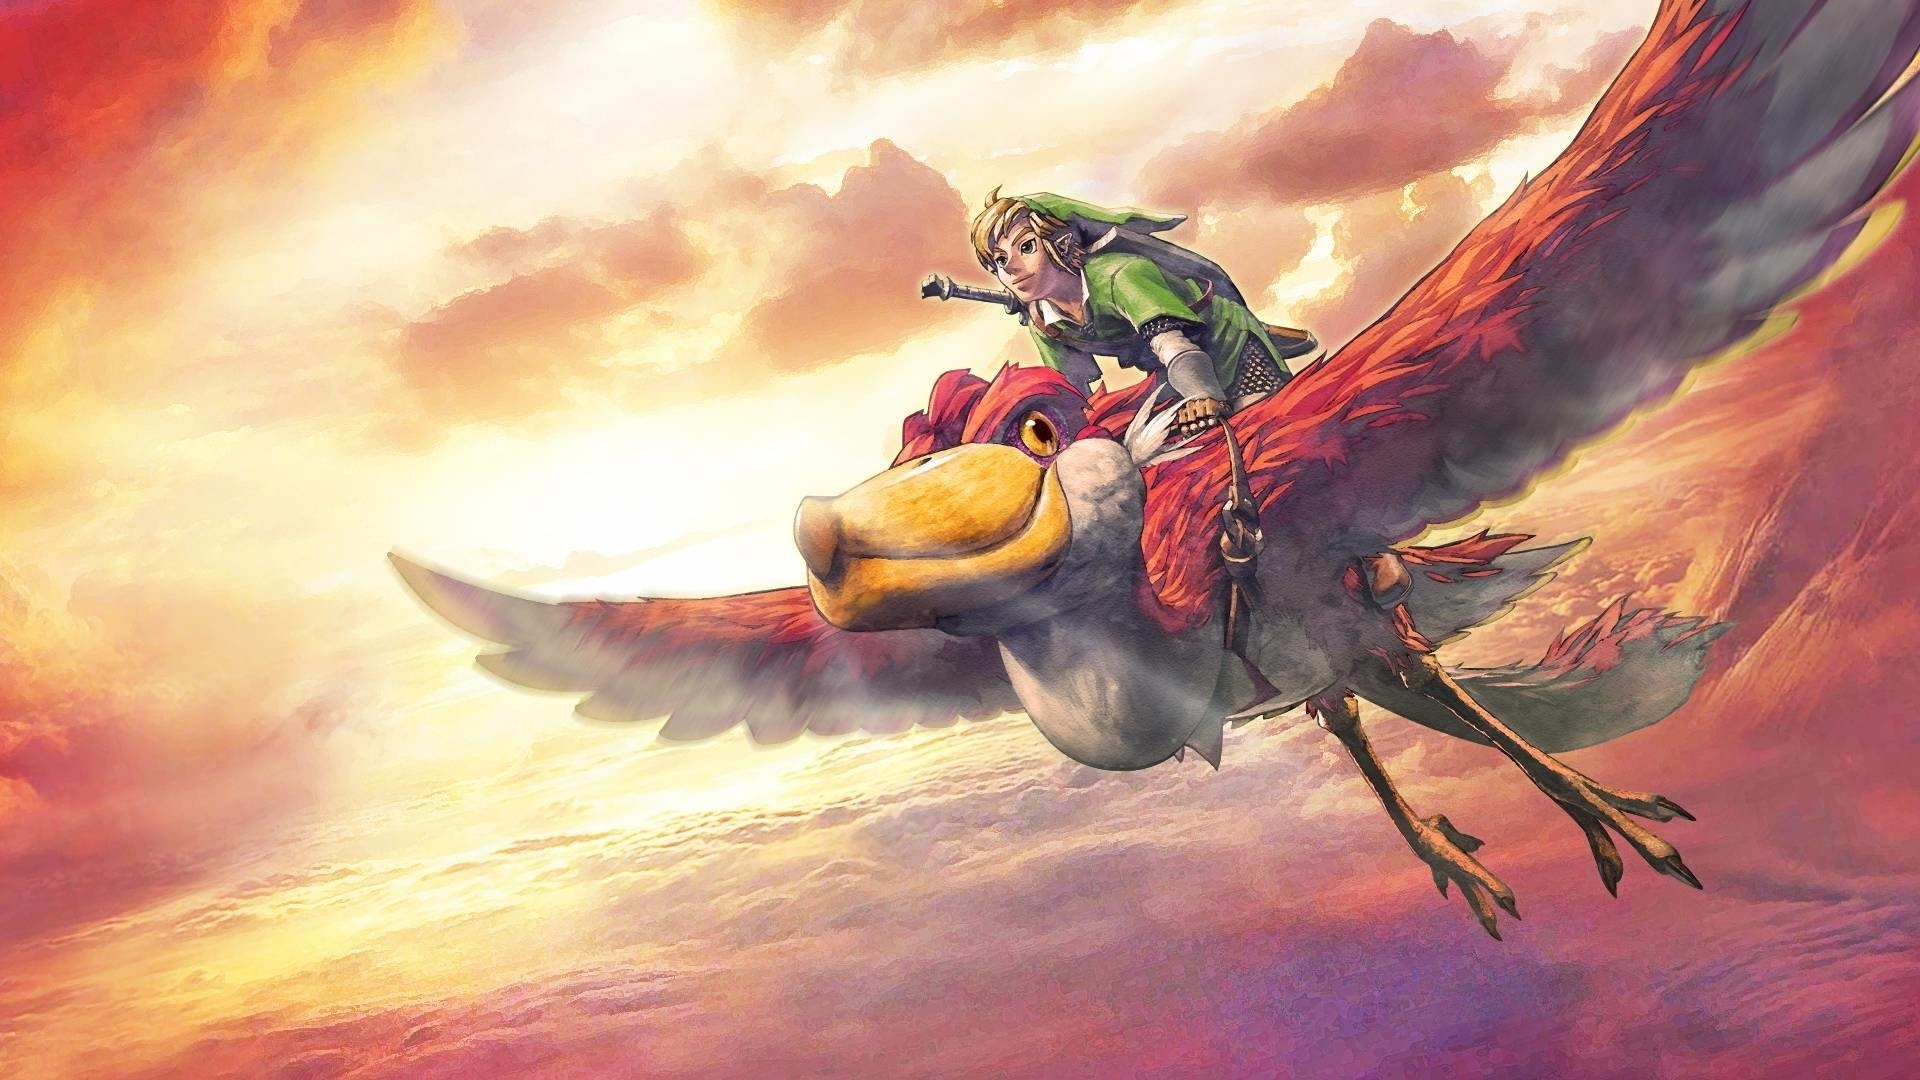 the legend of zelda: skyward sword full hd fond d'écran and arrière